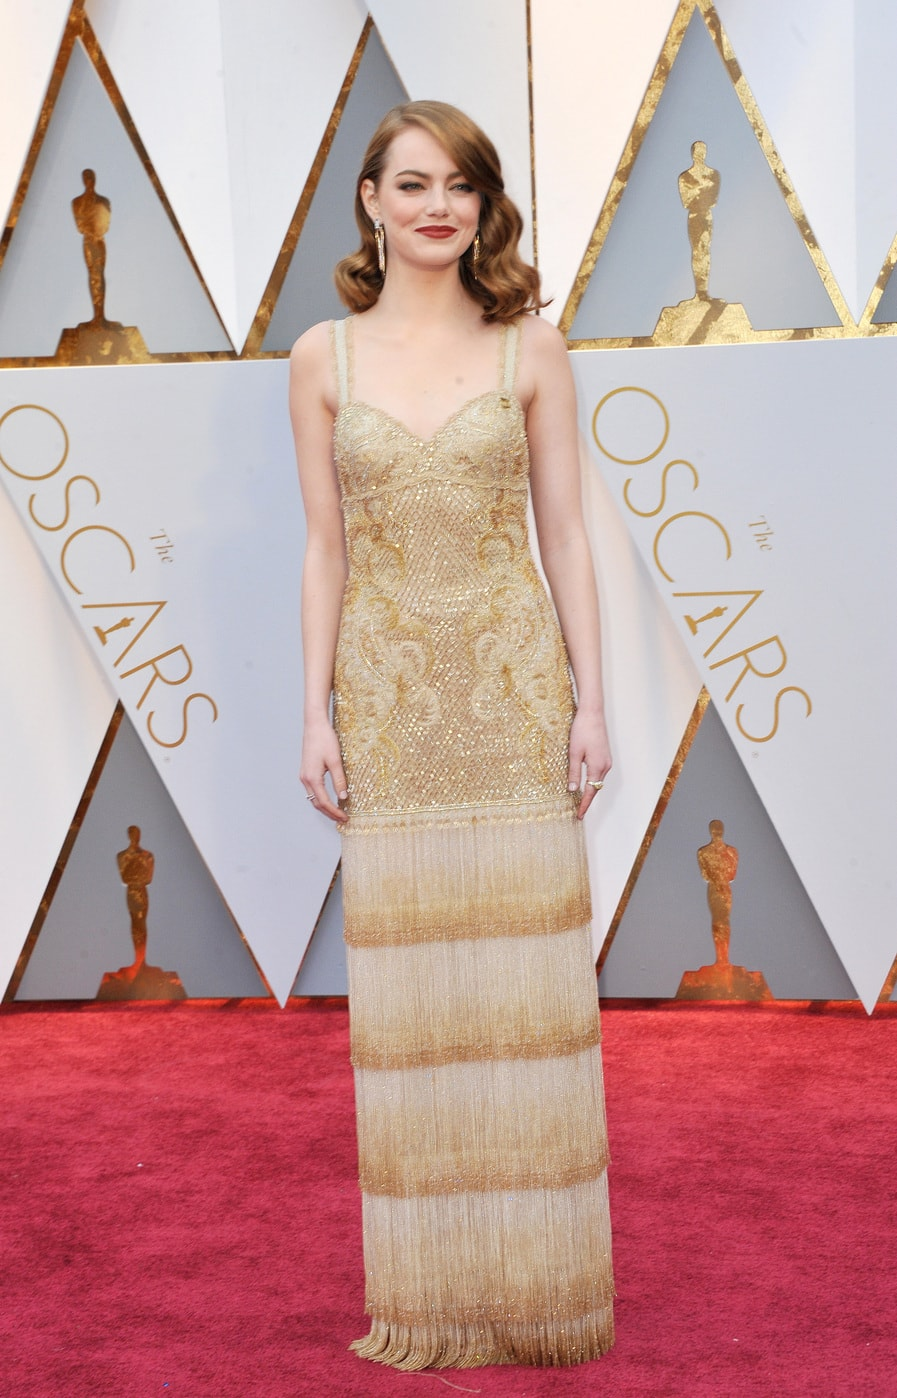 Emma Stone in Givenchy Couture at the 2017 Oscars